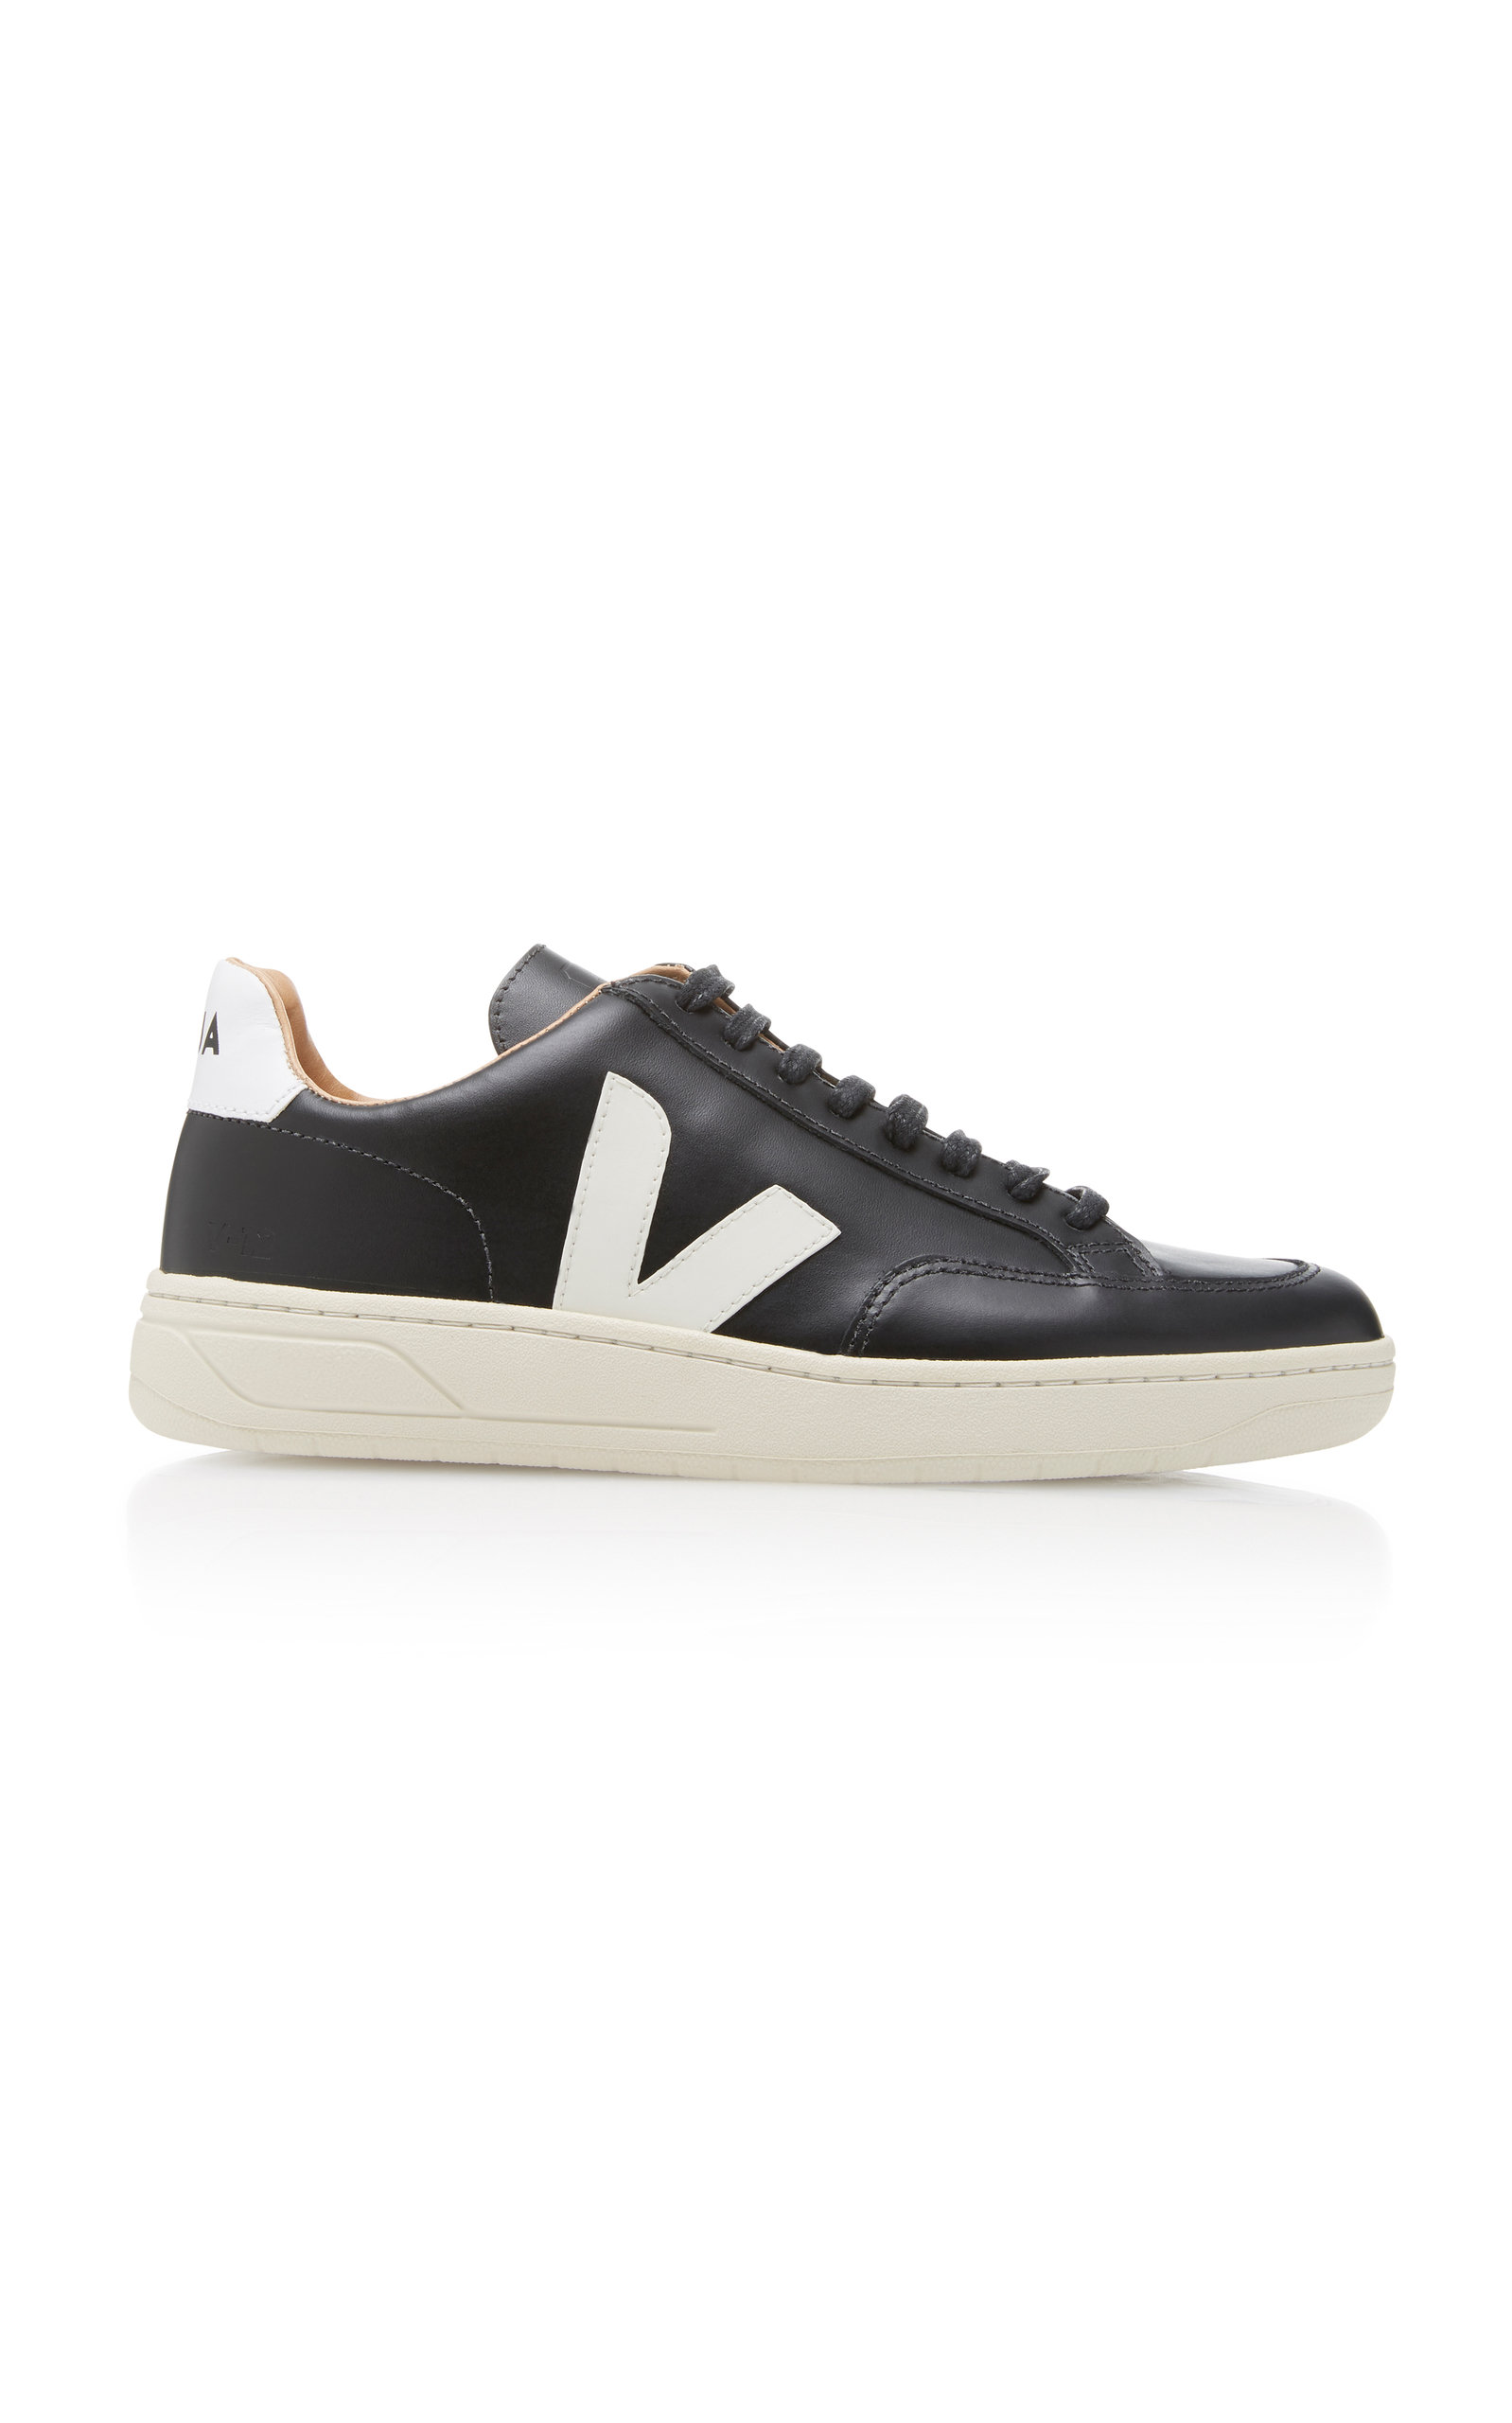 Veja Bastille Two-Tone Leather Sneakers a3Npz